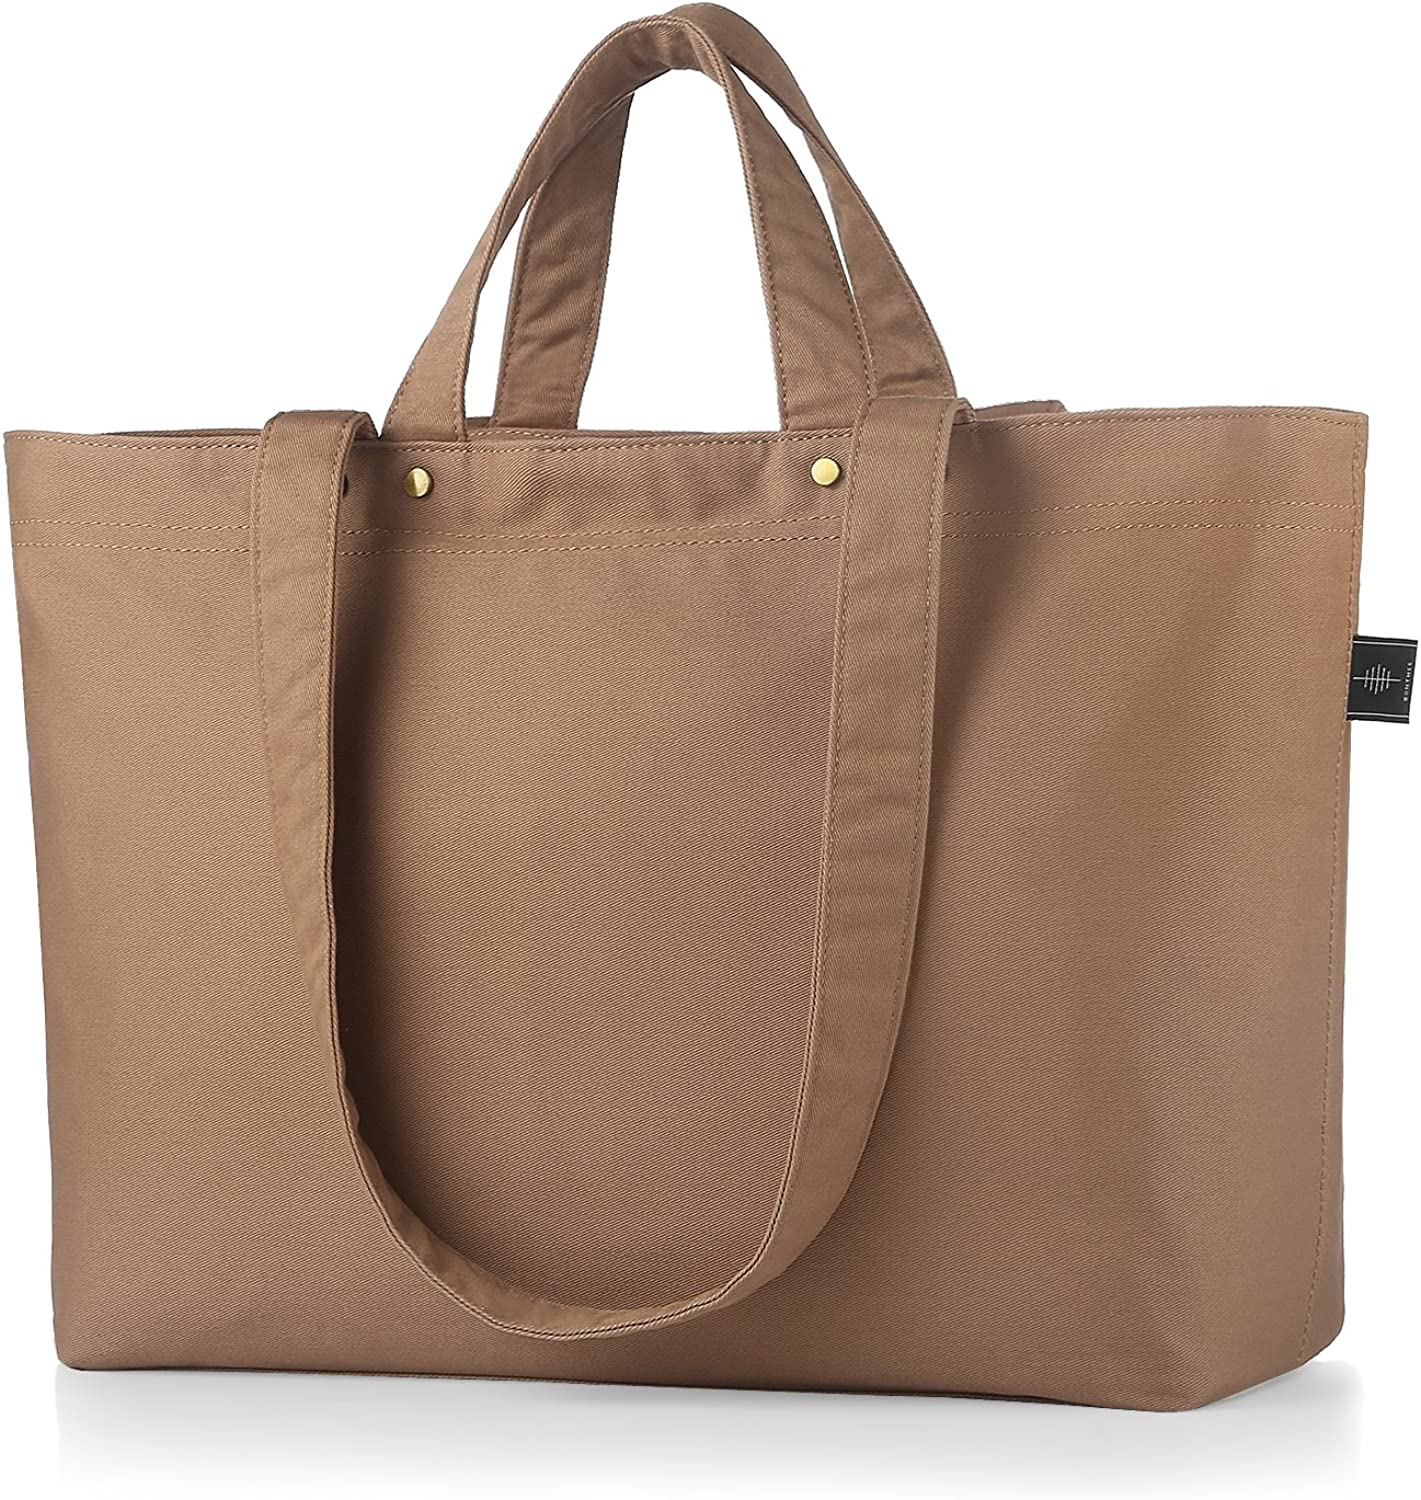 Womens Strong Large Canvas Tote Bags Shoulder Hand Bag for Shopping Work Books and Much More